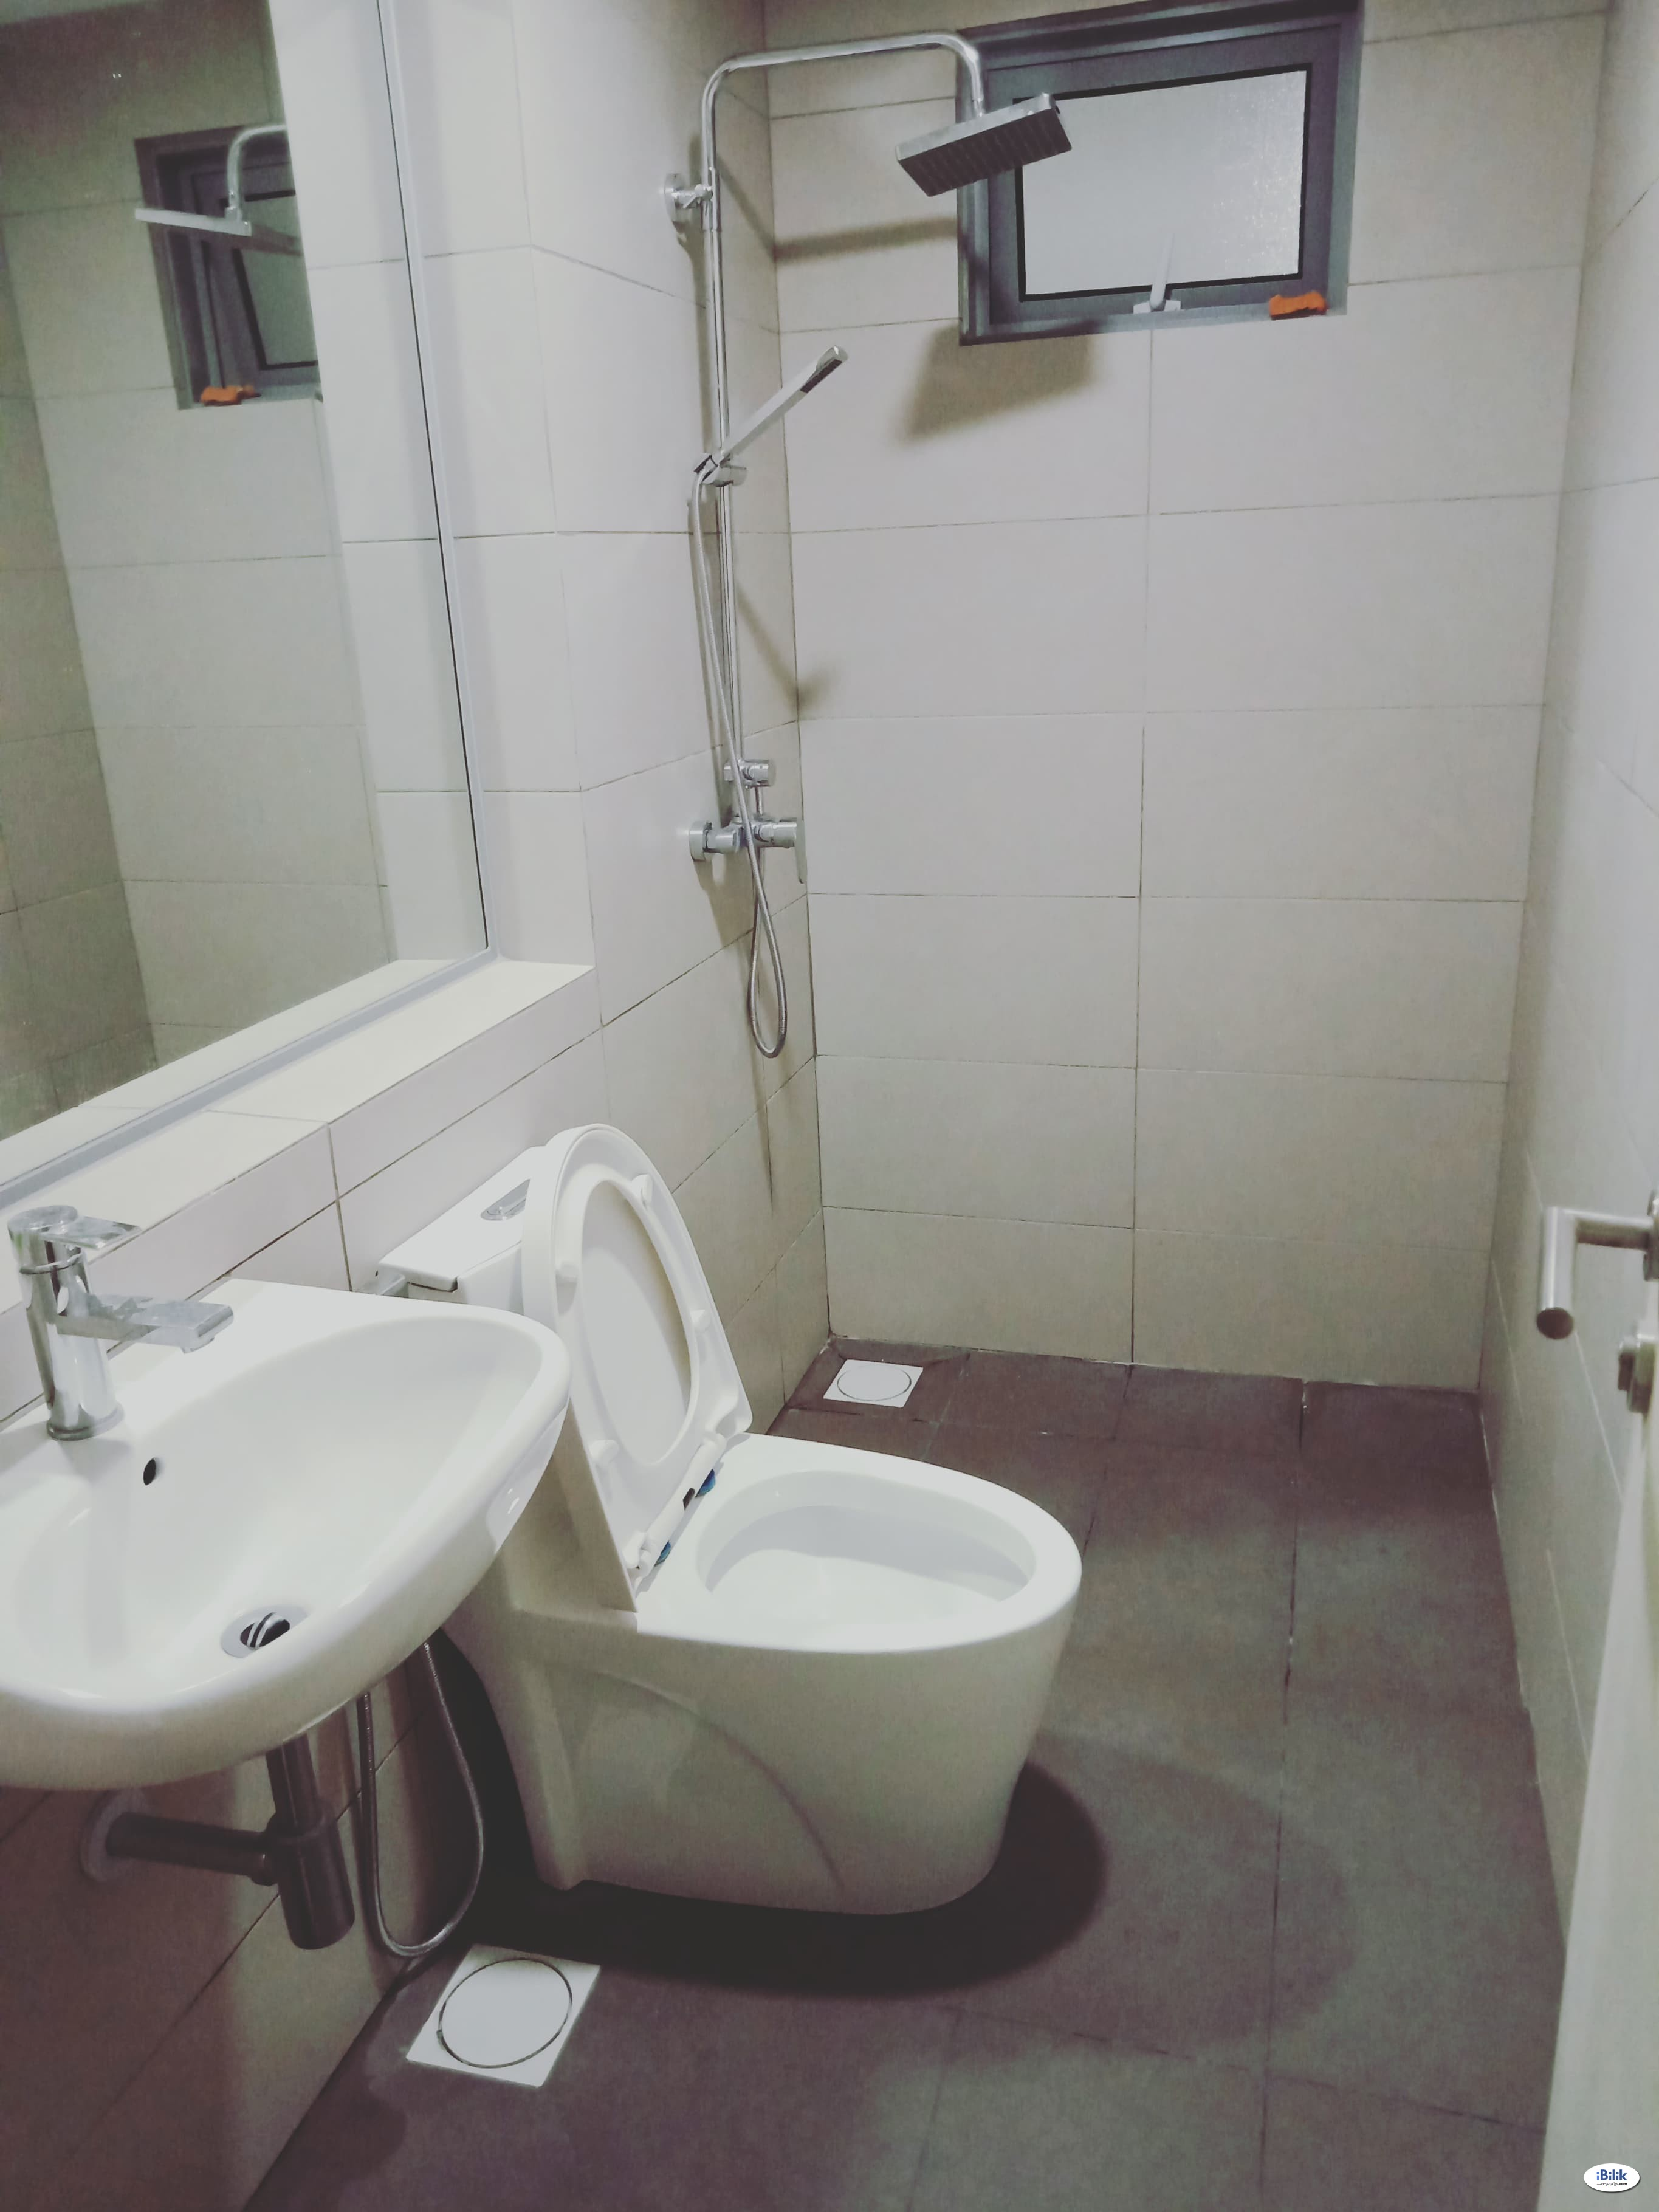 Small Room at LakeFront Residence, Cyberjaya (chinese female - short term)